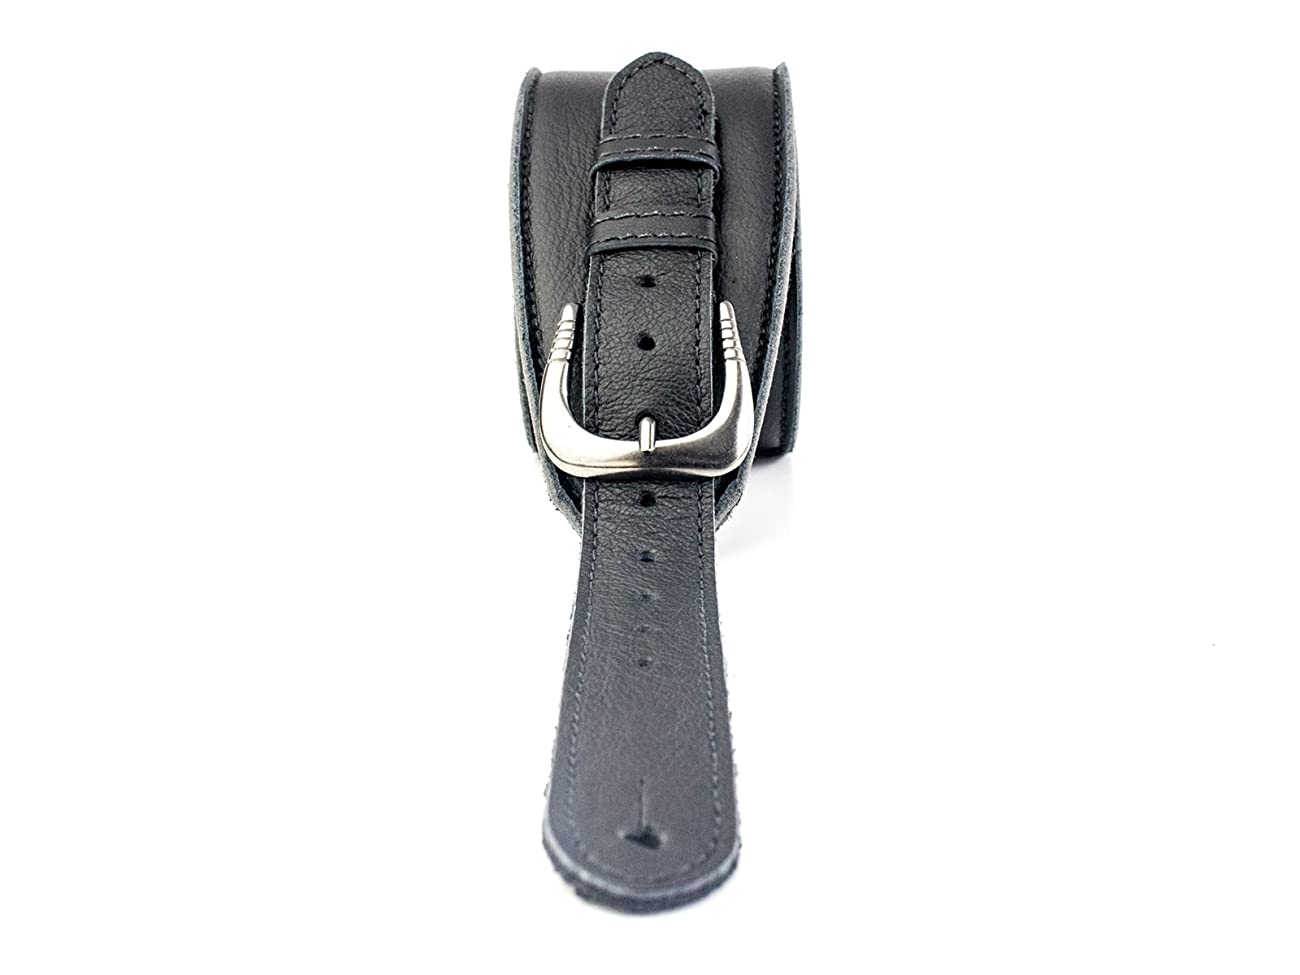 UK Made Black Vintage Extra Wide Soft Real Leather Guitar Strap with Buckle Adjustable Length 2